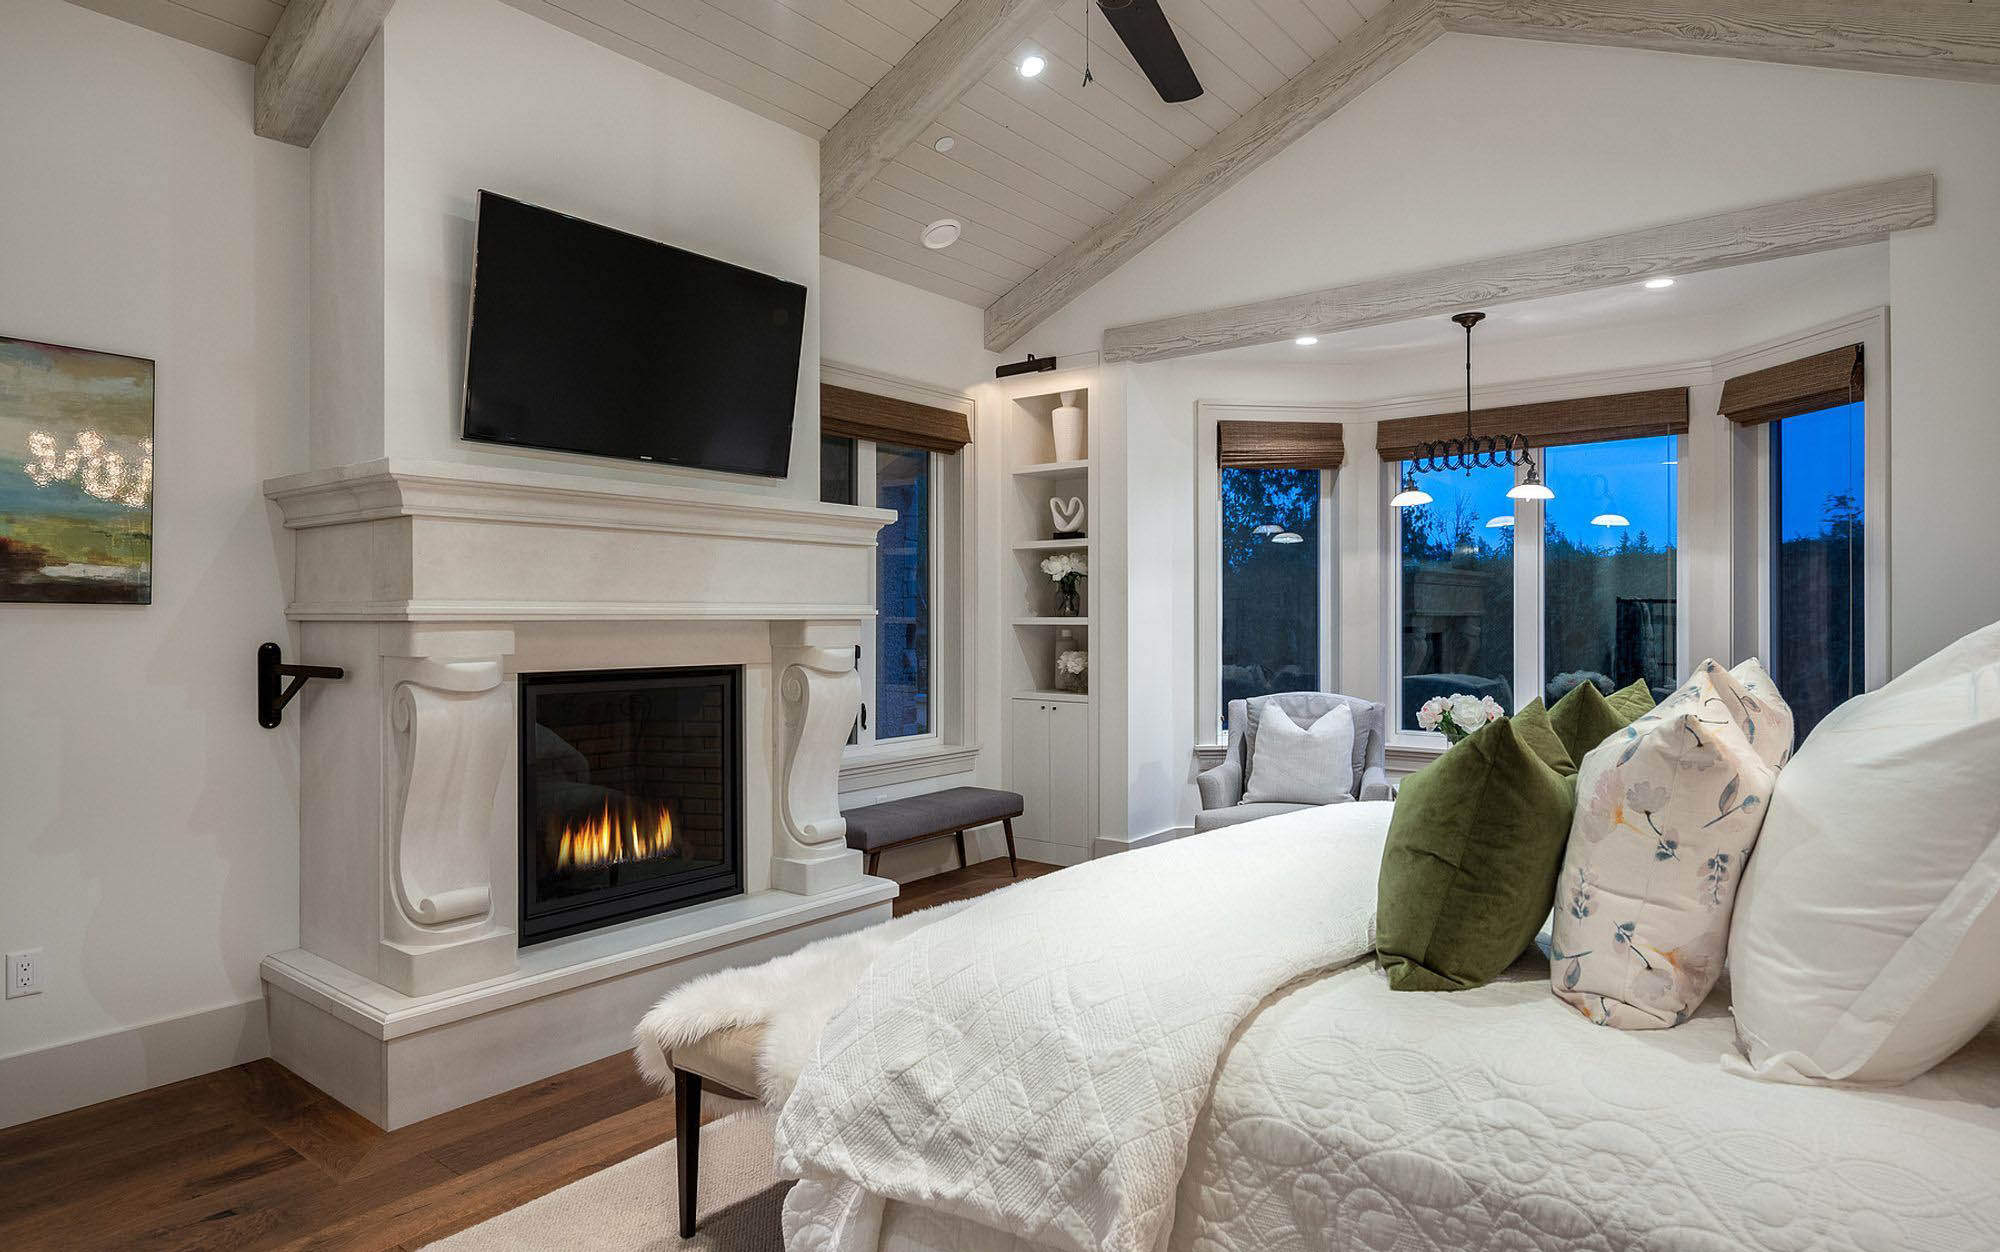 light master bedroom design with vaulted ceiling and a chalky gray color scheme